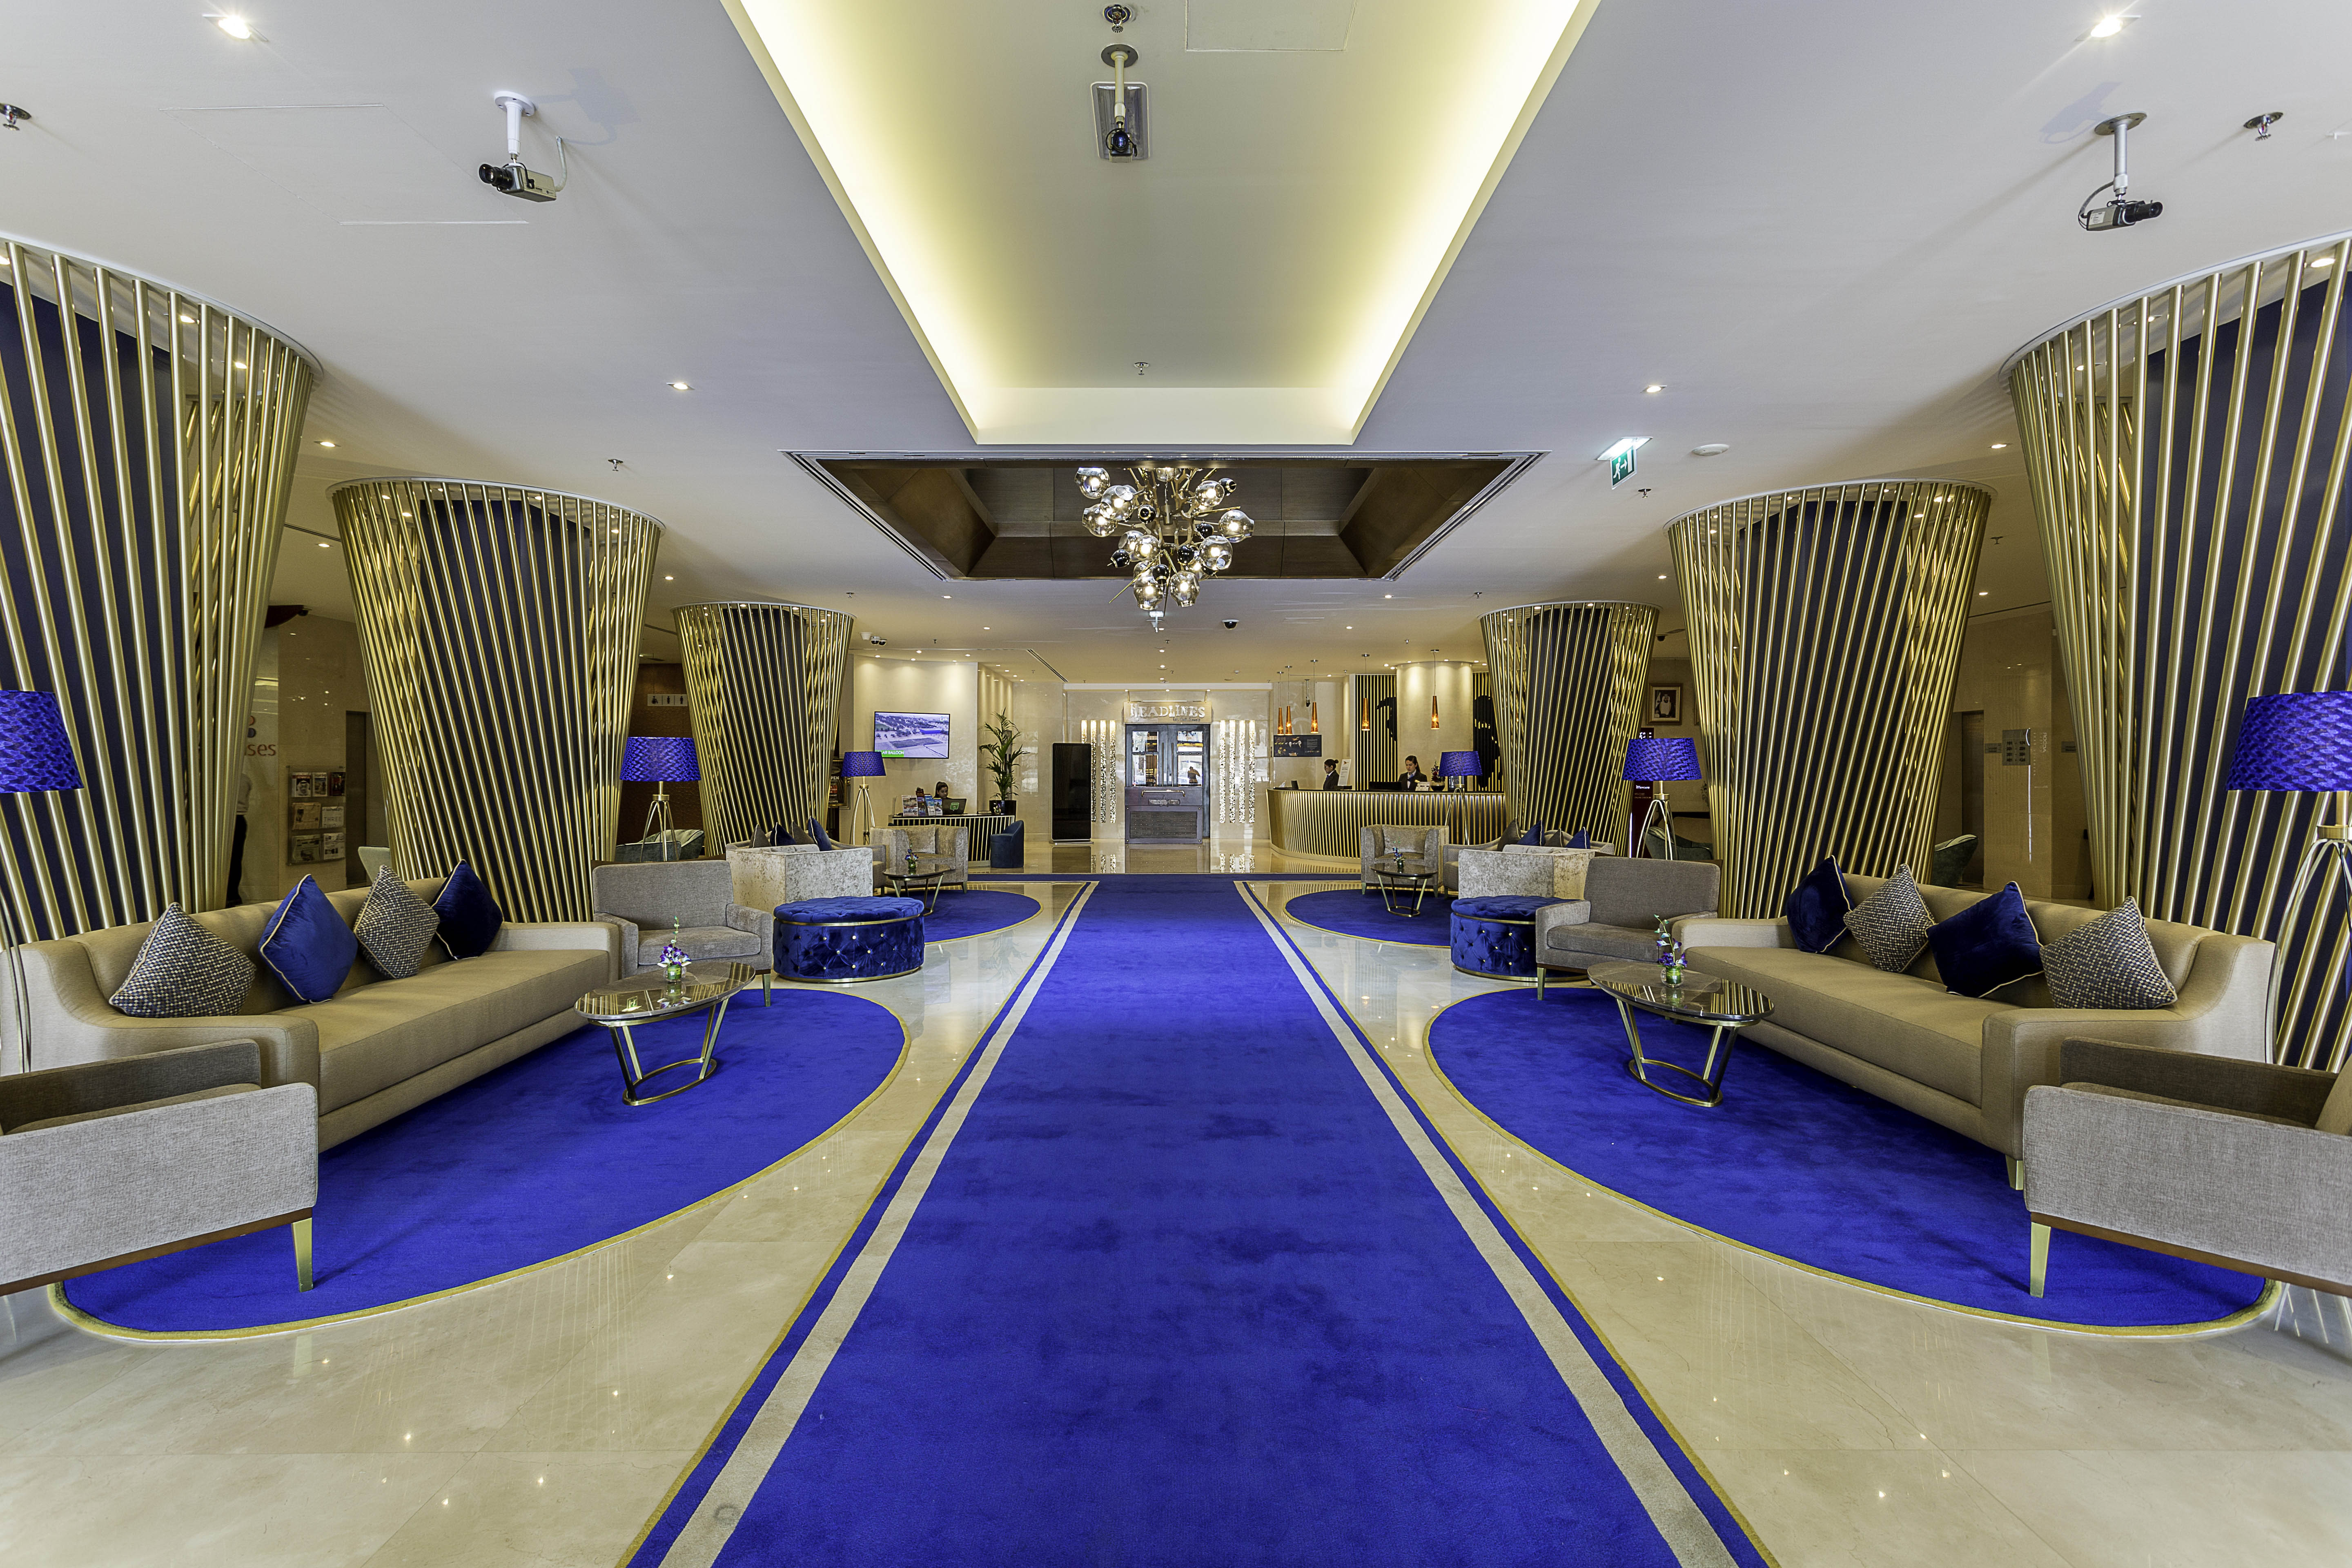 Design Haus Medy redesigns Mercure Gold Hotel - Design Middle East